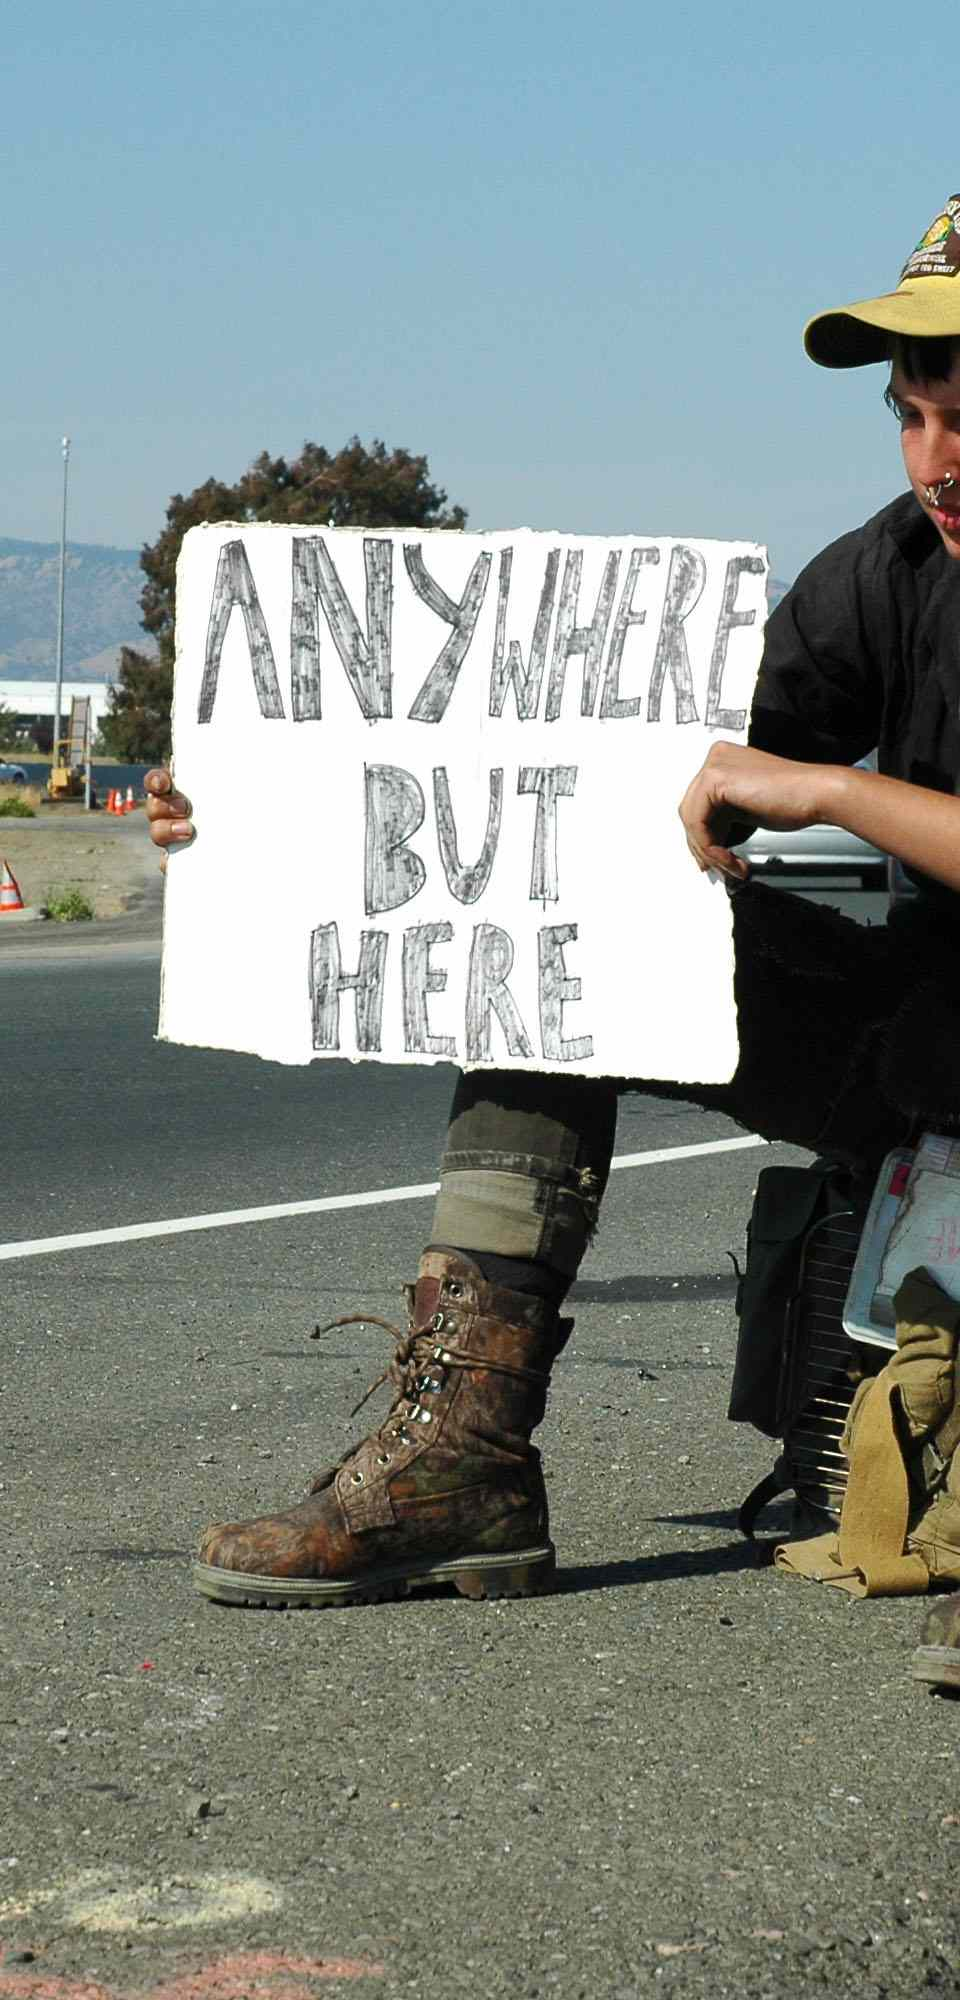 woman by the side of the road with hitchhiking sign